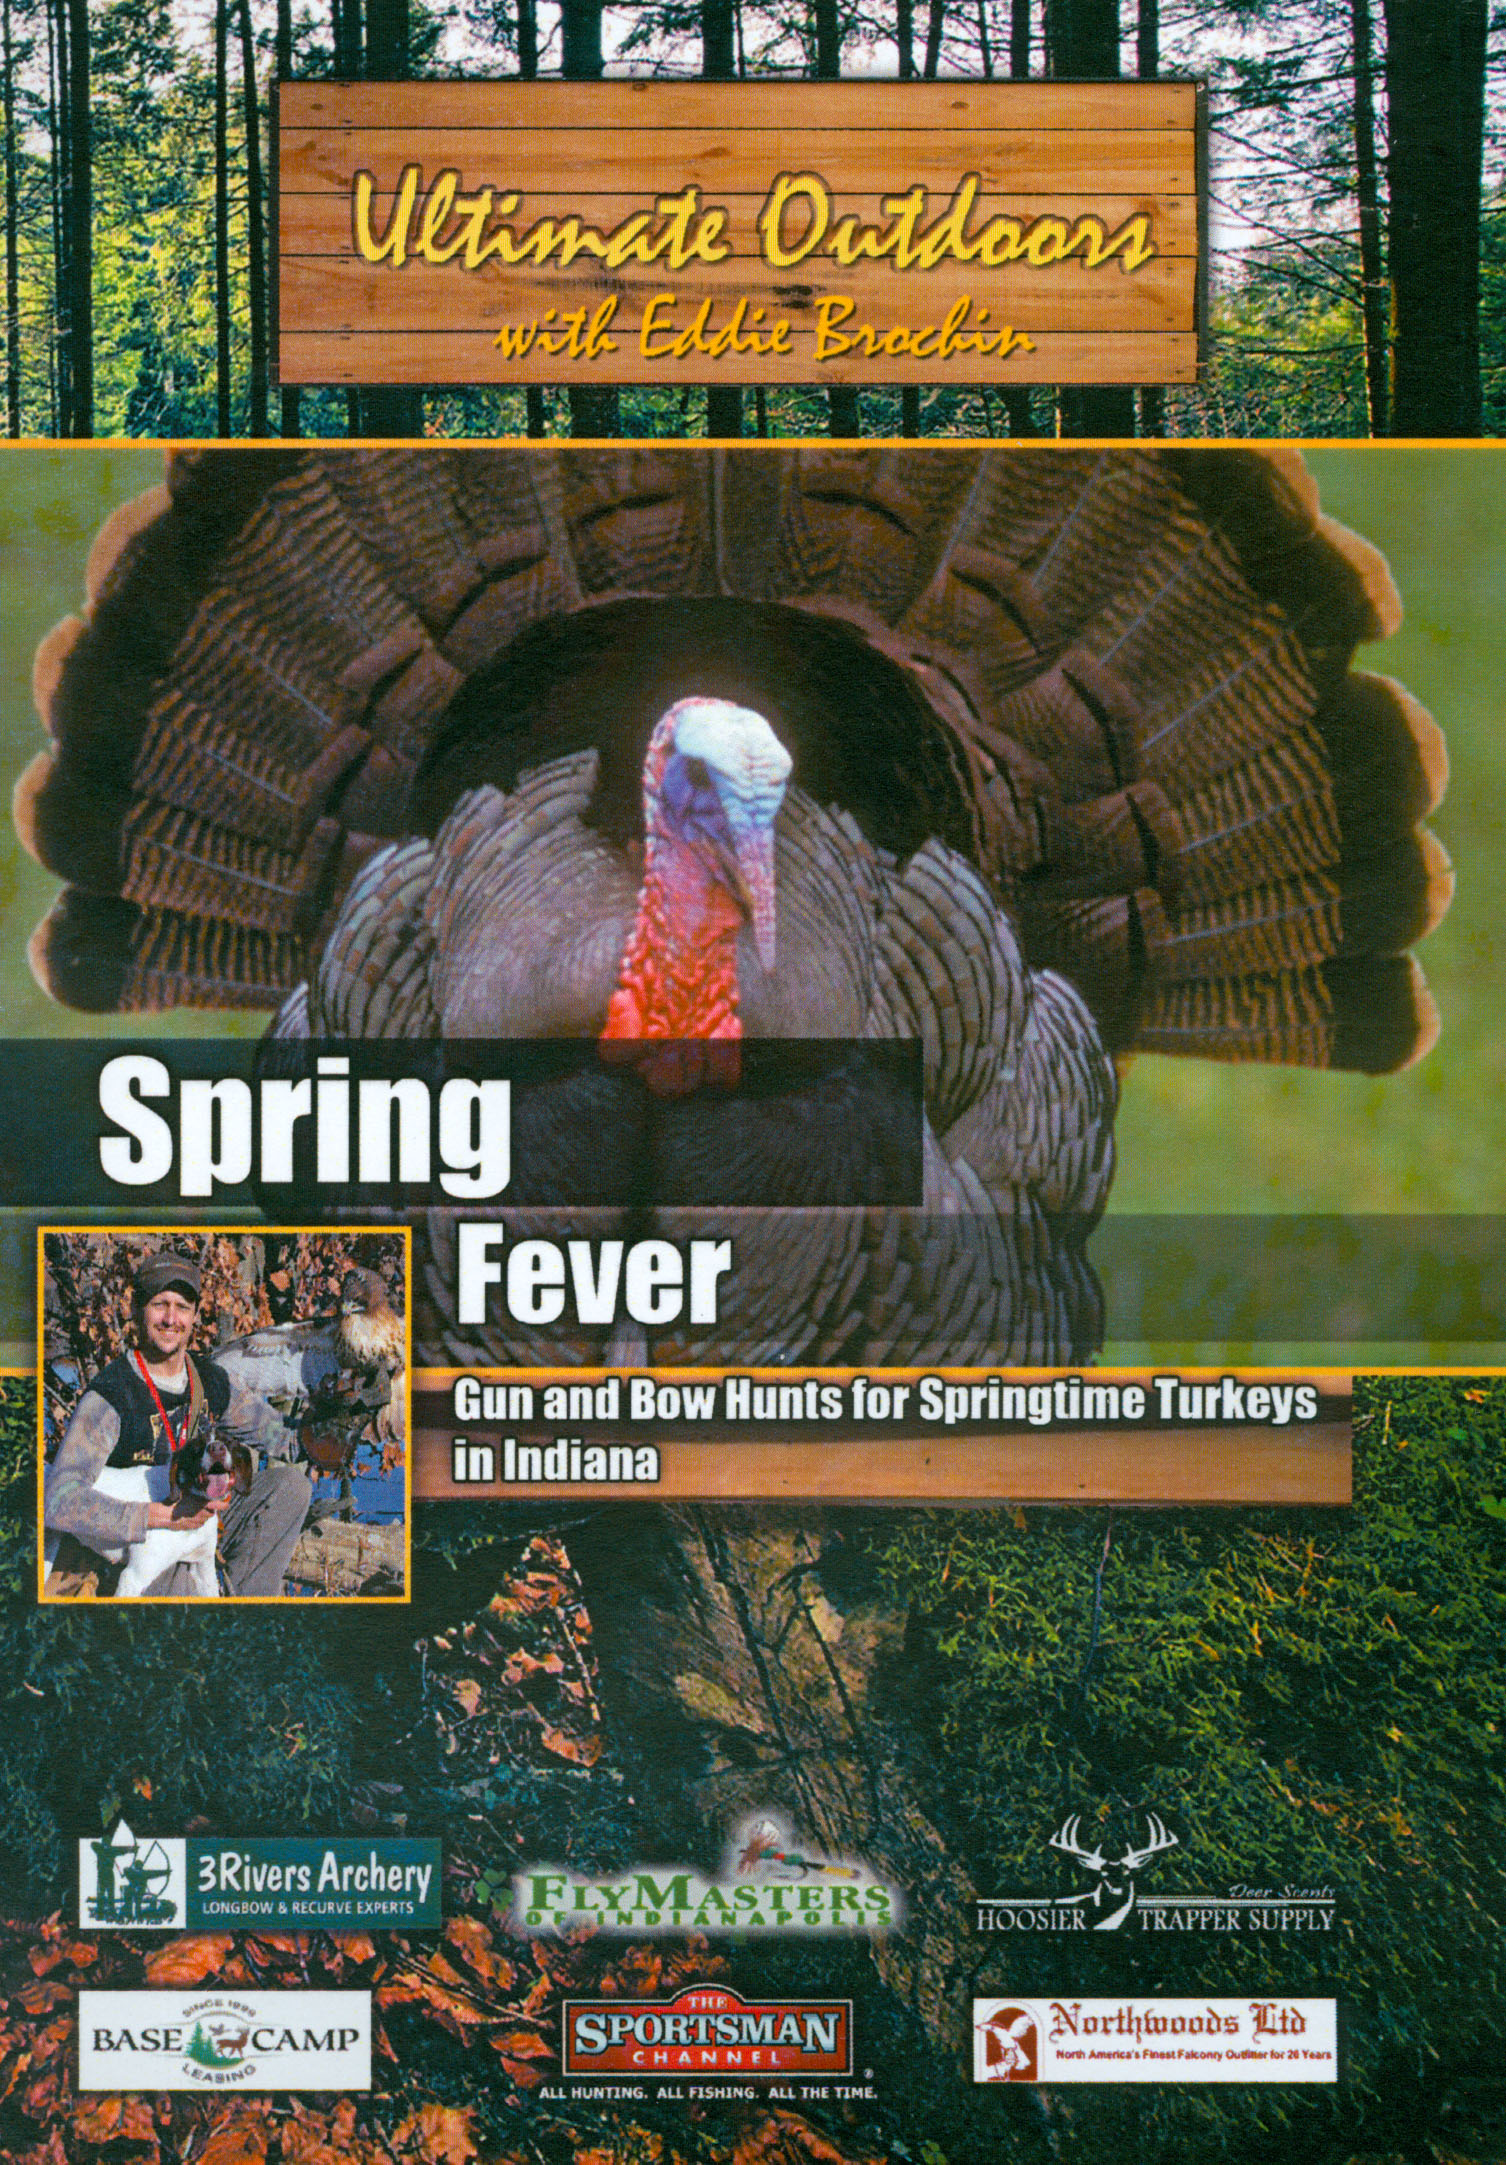 Ultimate Outdoors With Eddie Brochin: Spring Fever